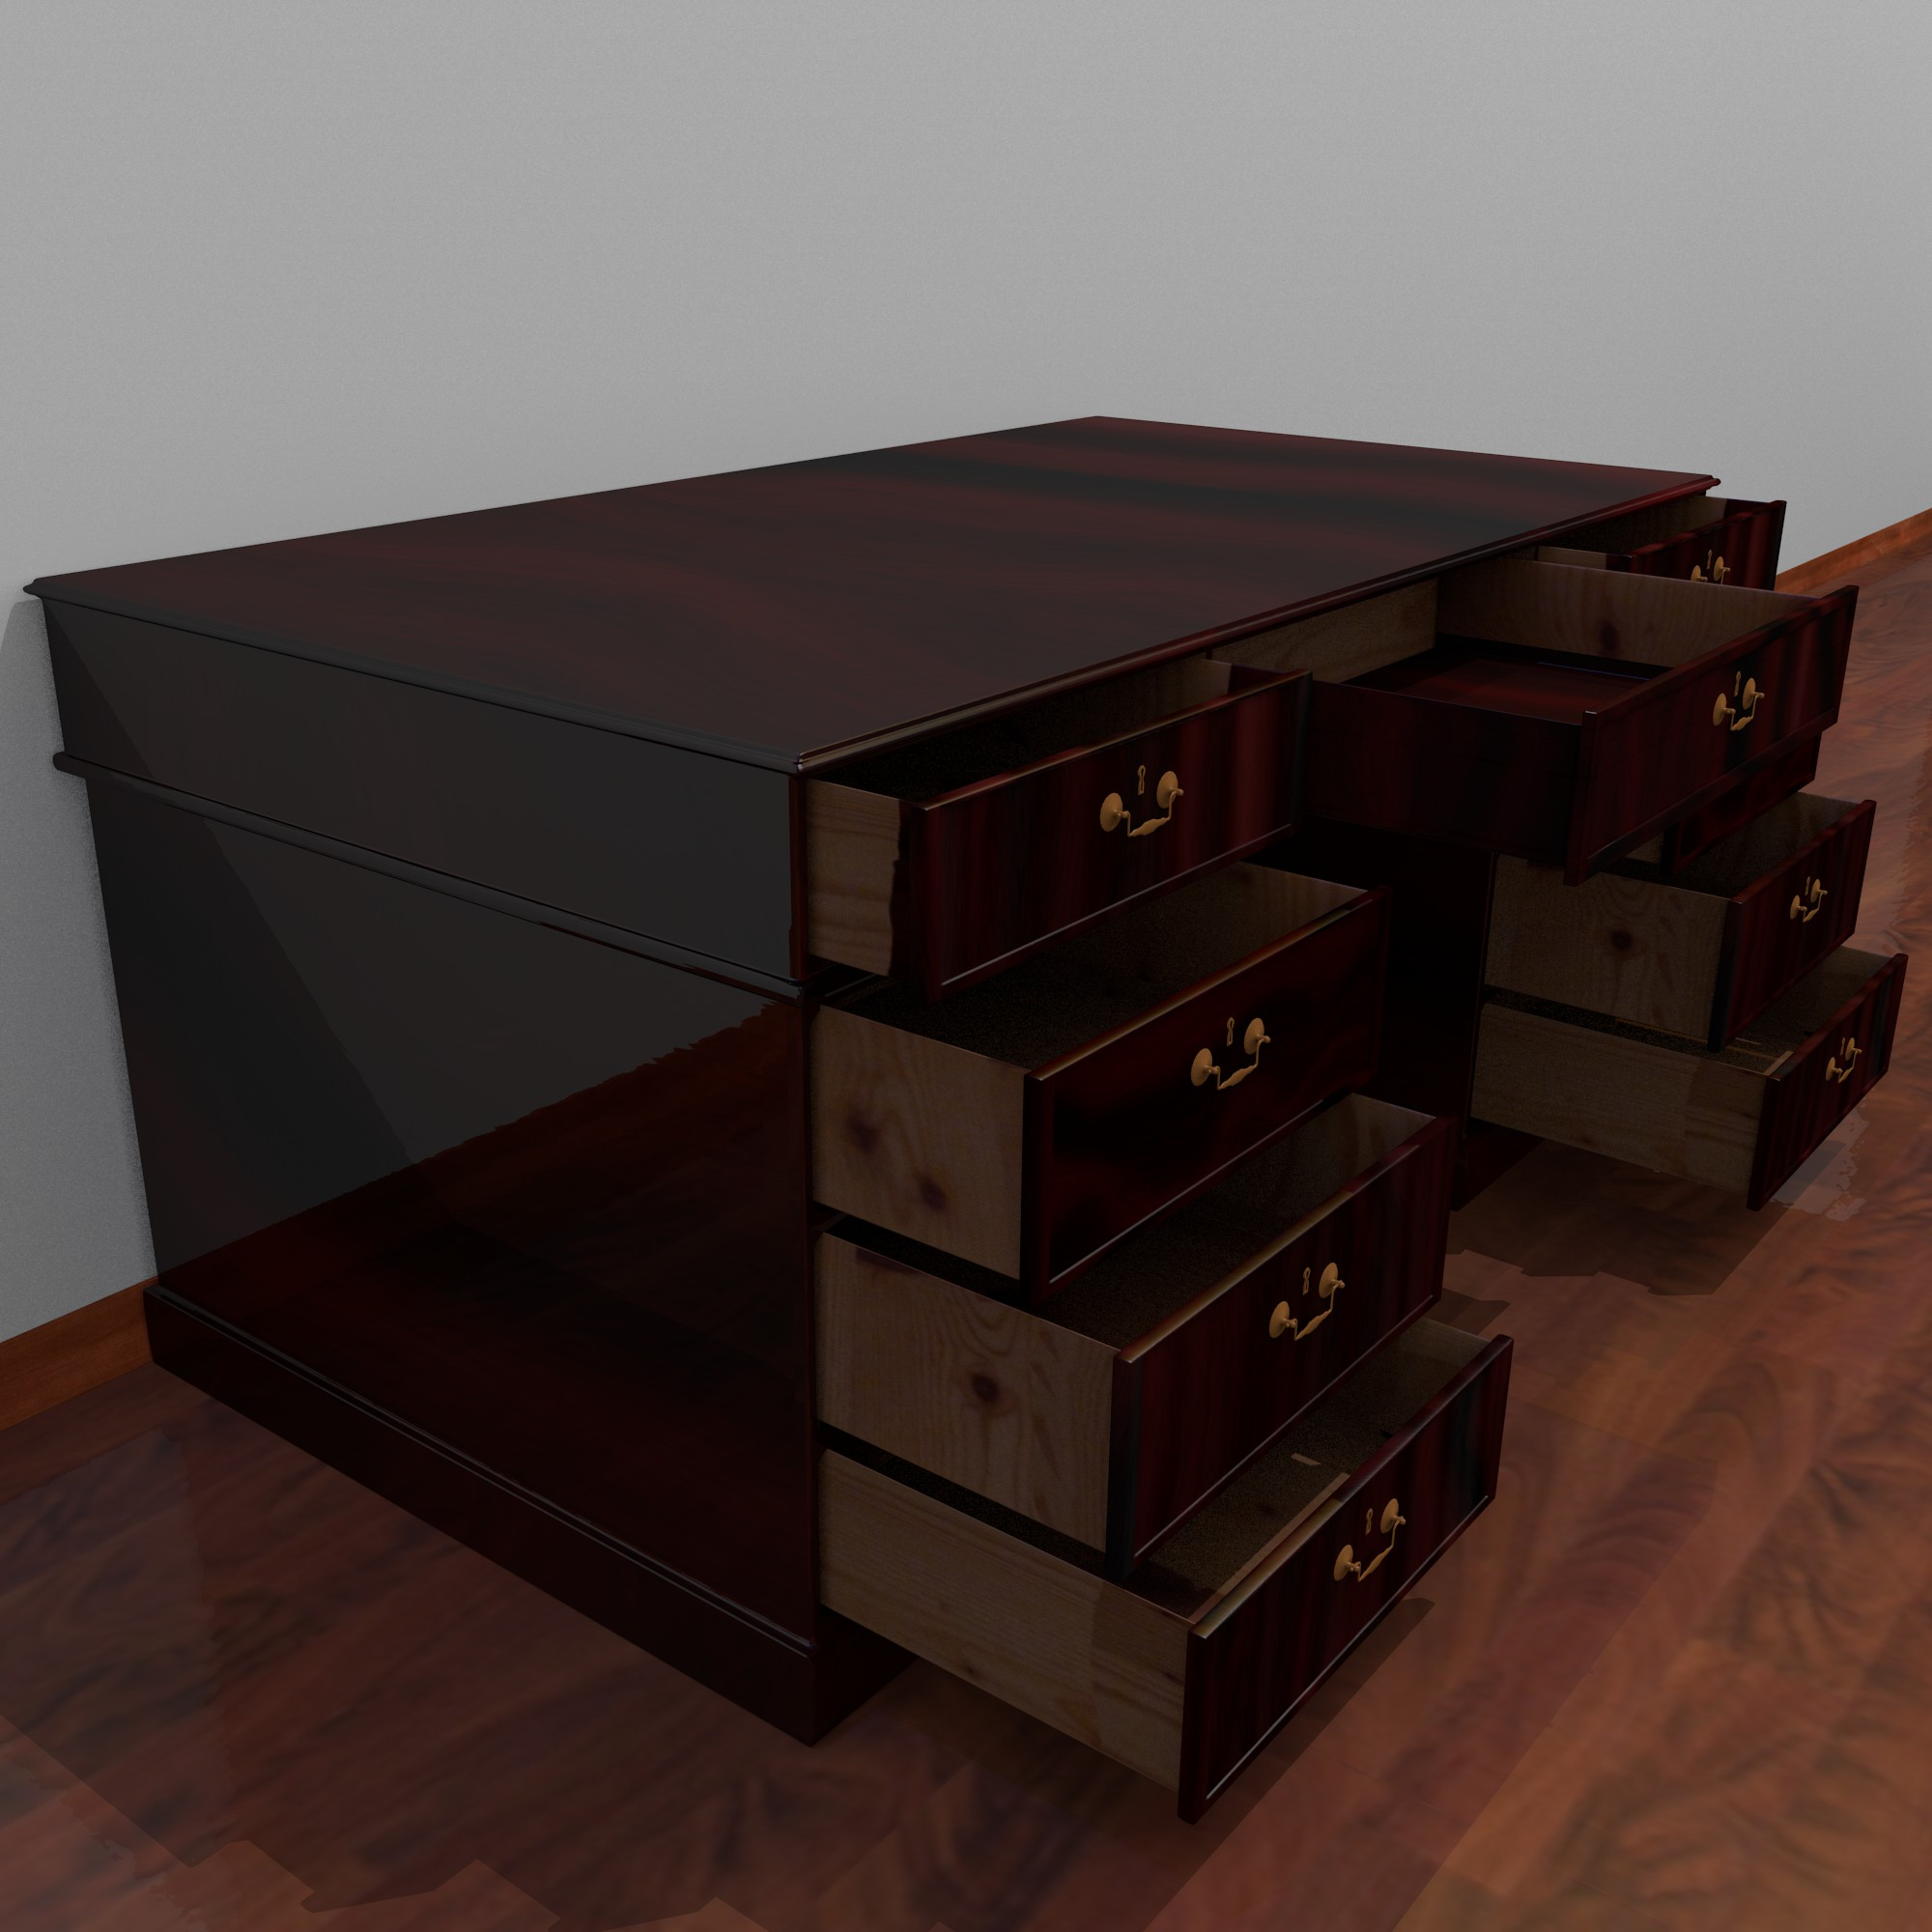 dark wood desk 3d model fbx blend dae obj 117670